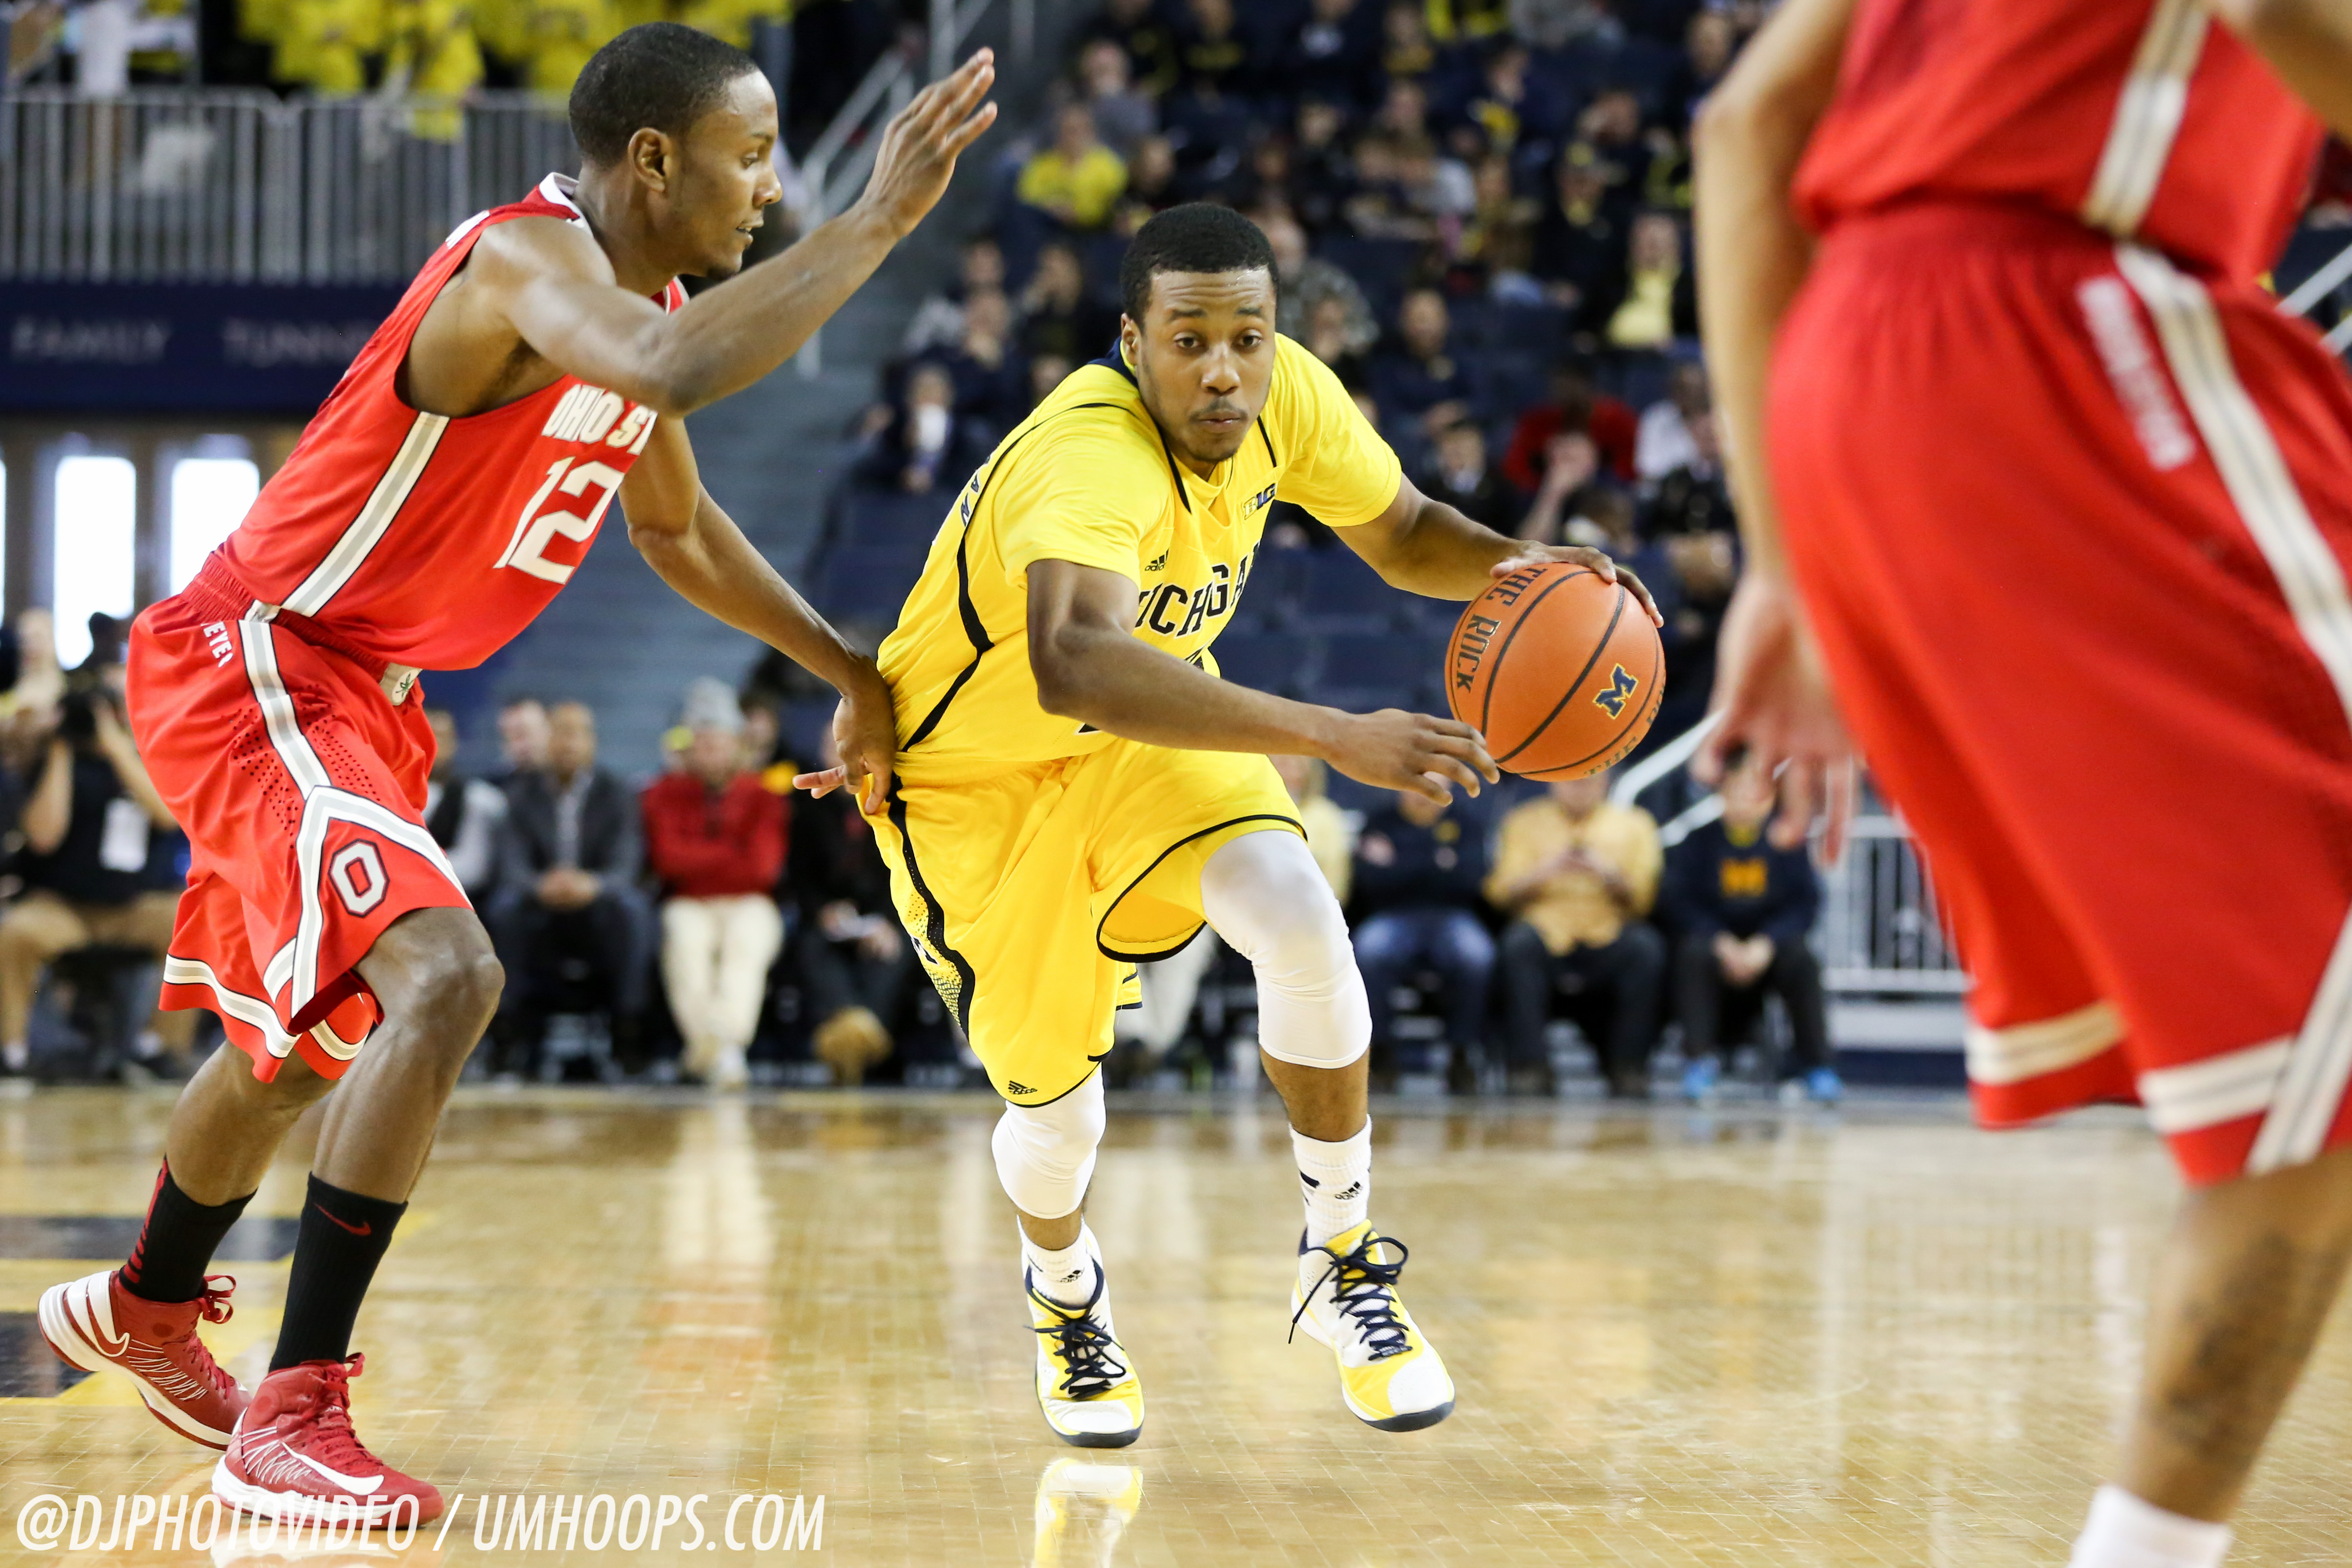 Michigan 64, Ohio State 57-17